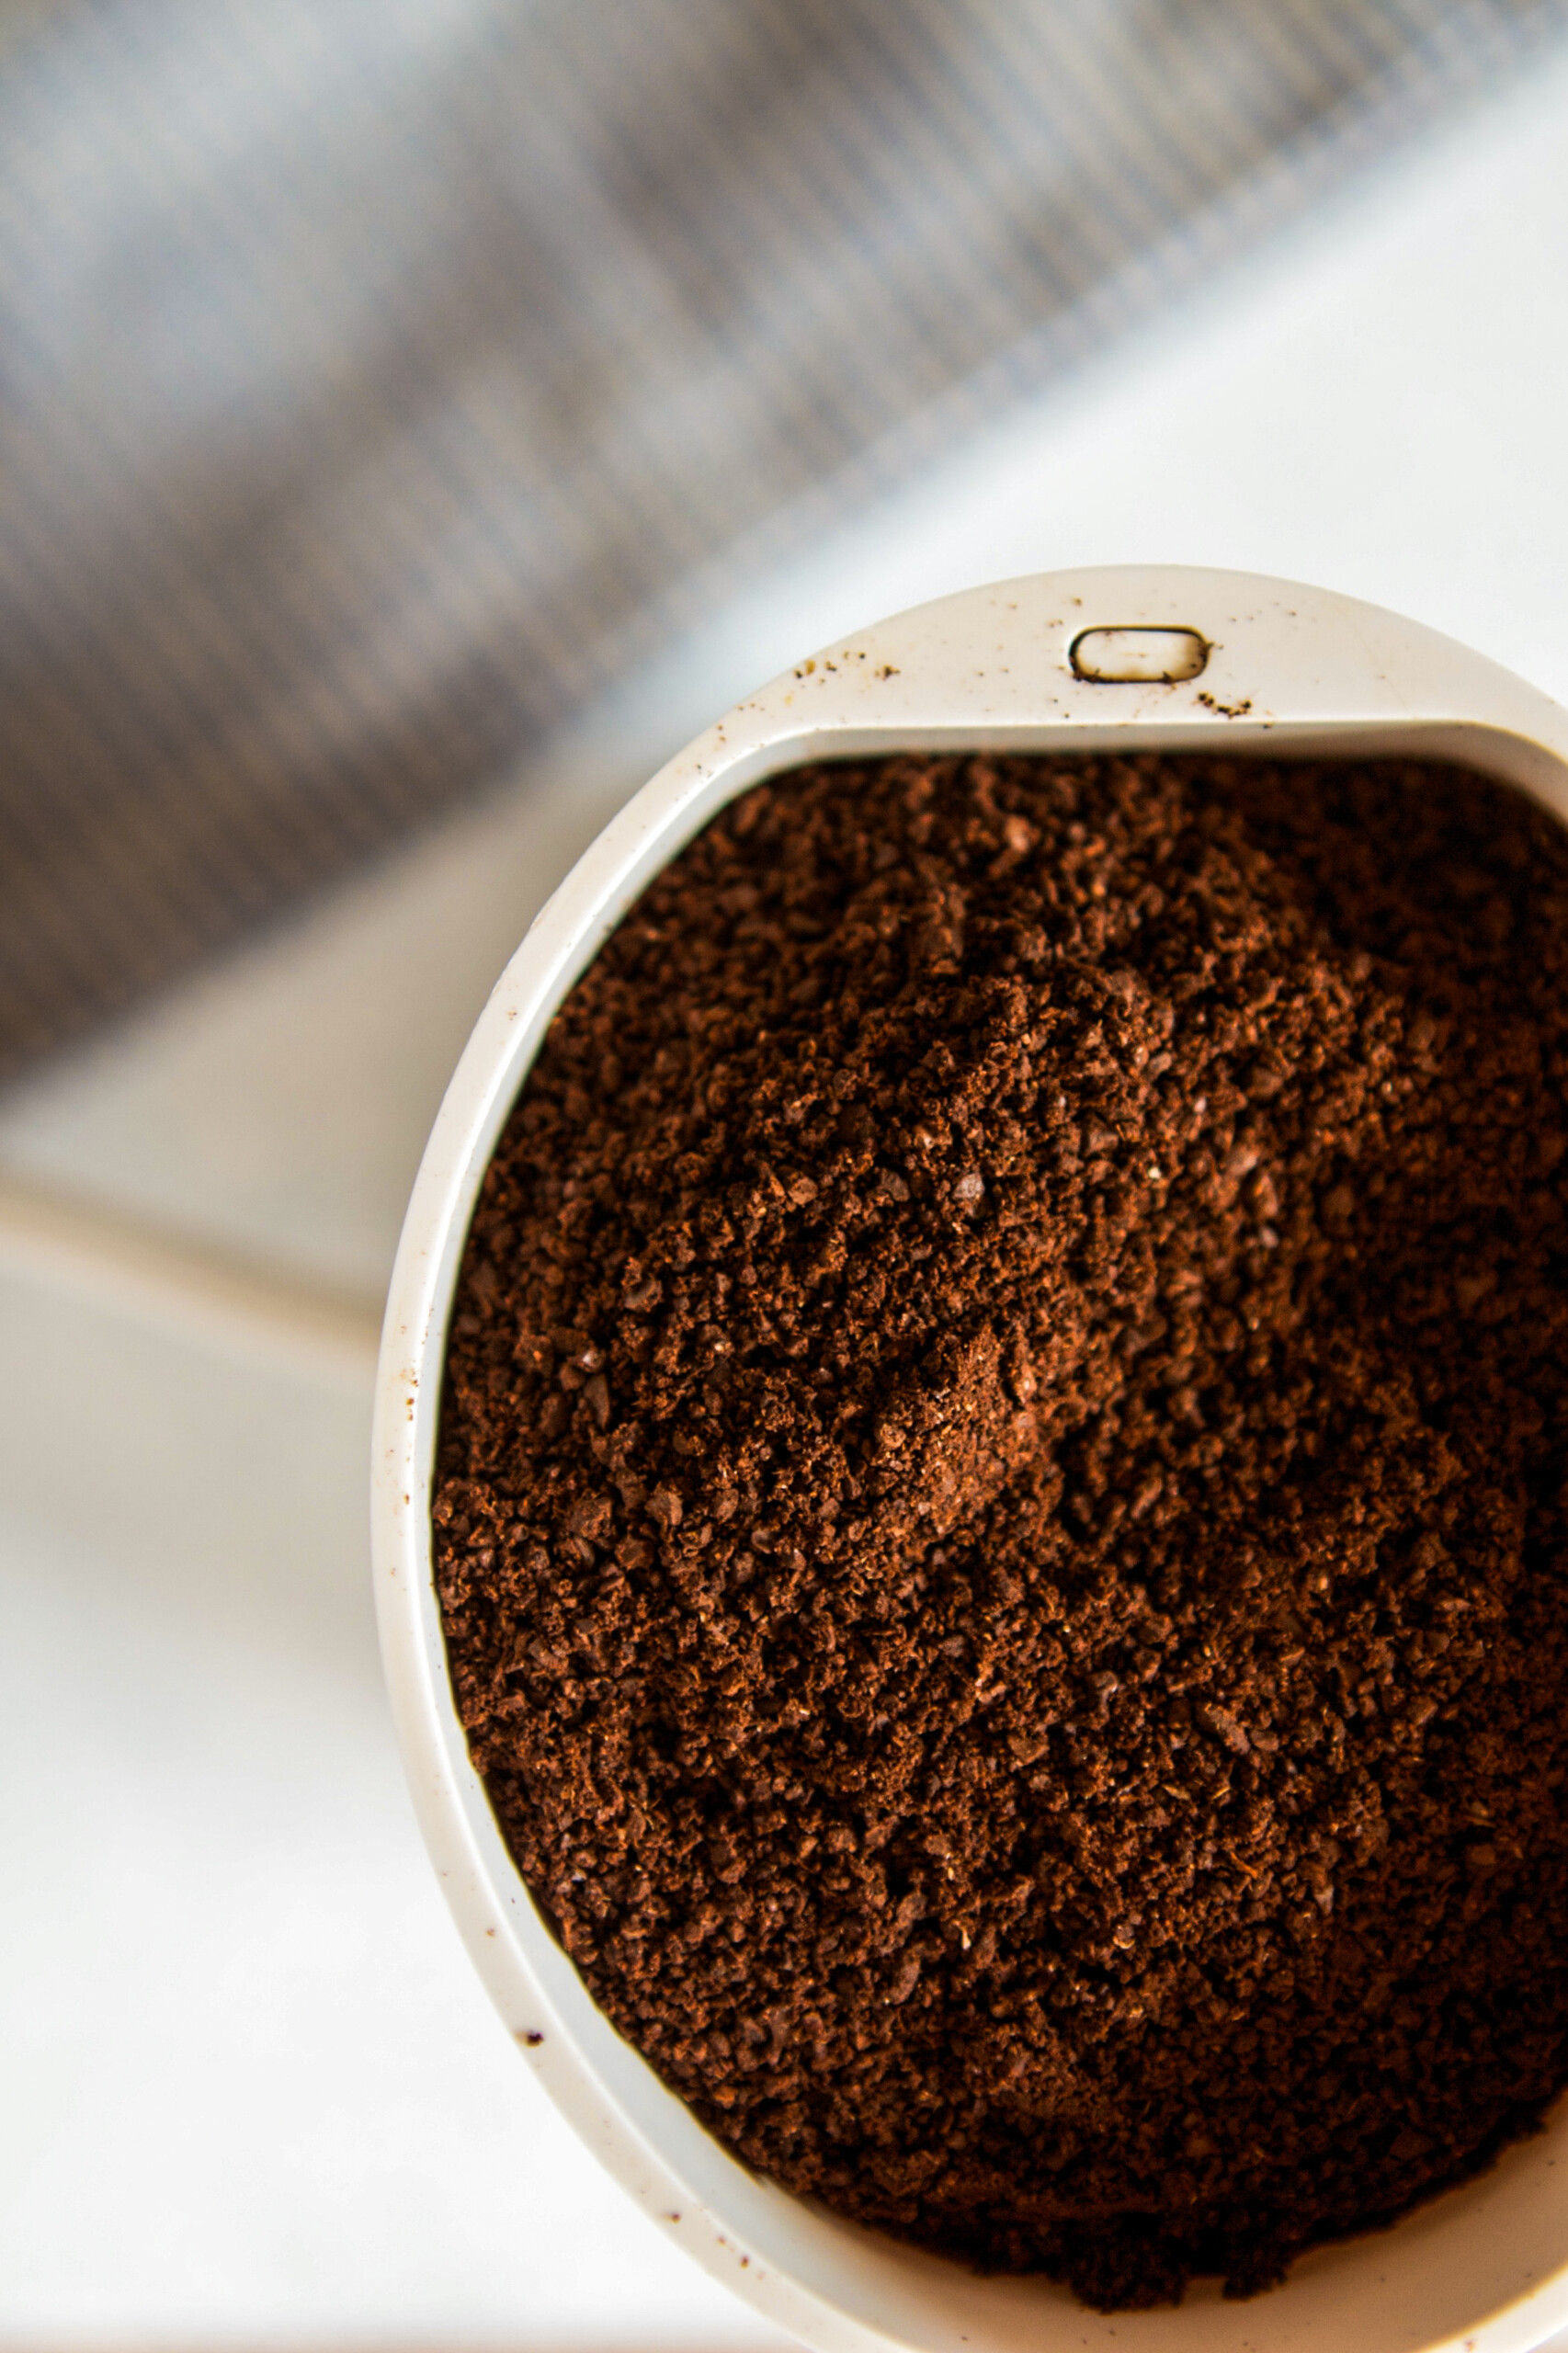 How to Brew Chemex Coffee | Zestful Kitchen